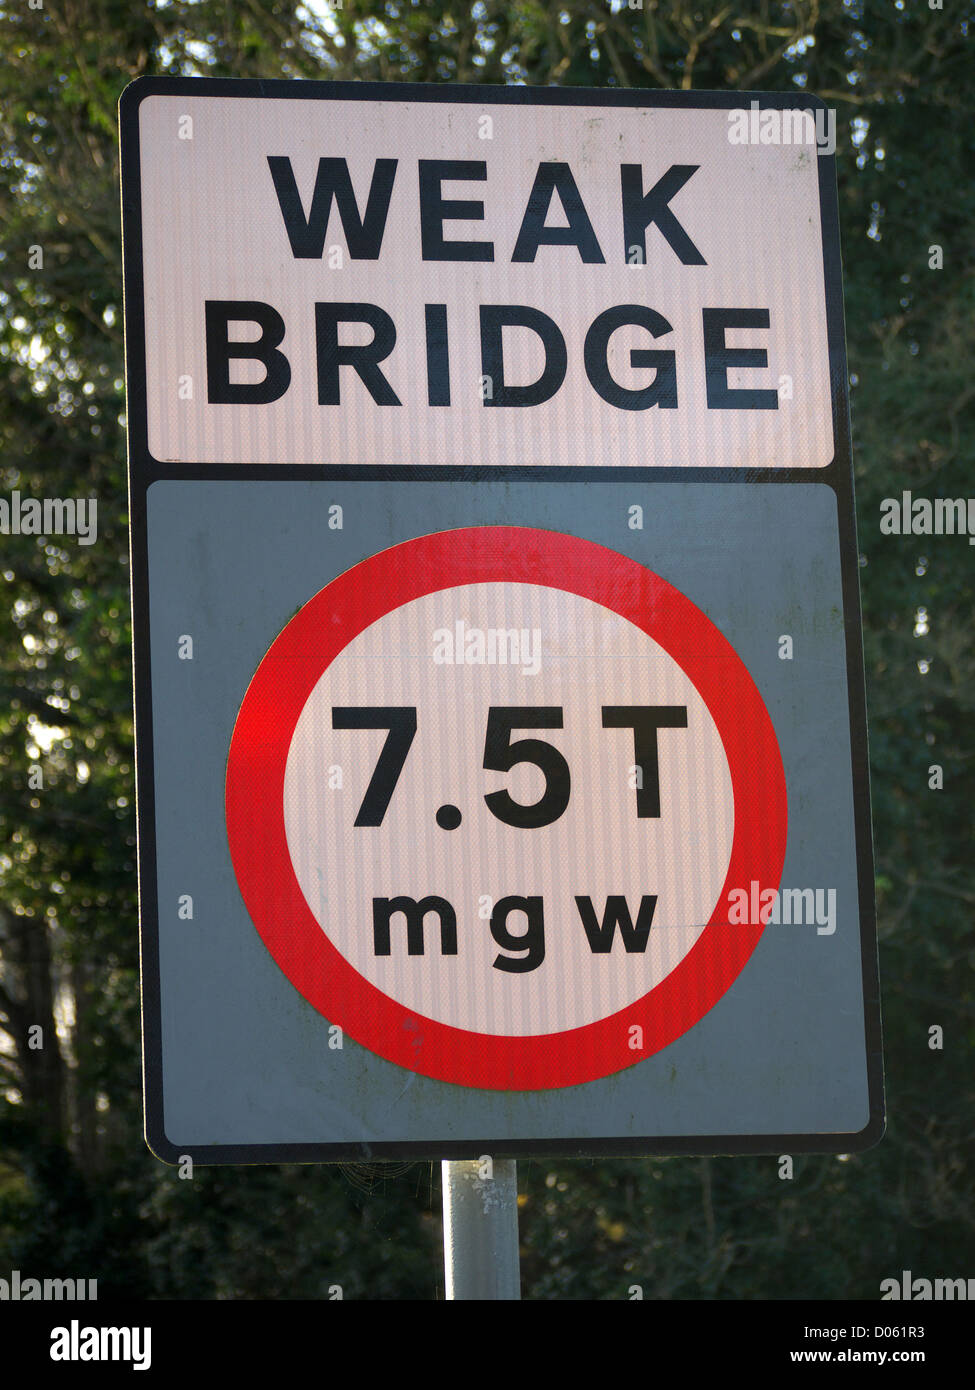 A road sign warning of a weak bridge ahead - Stock Image